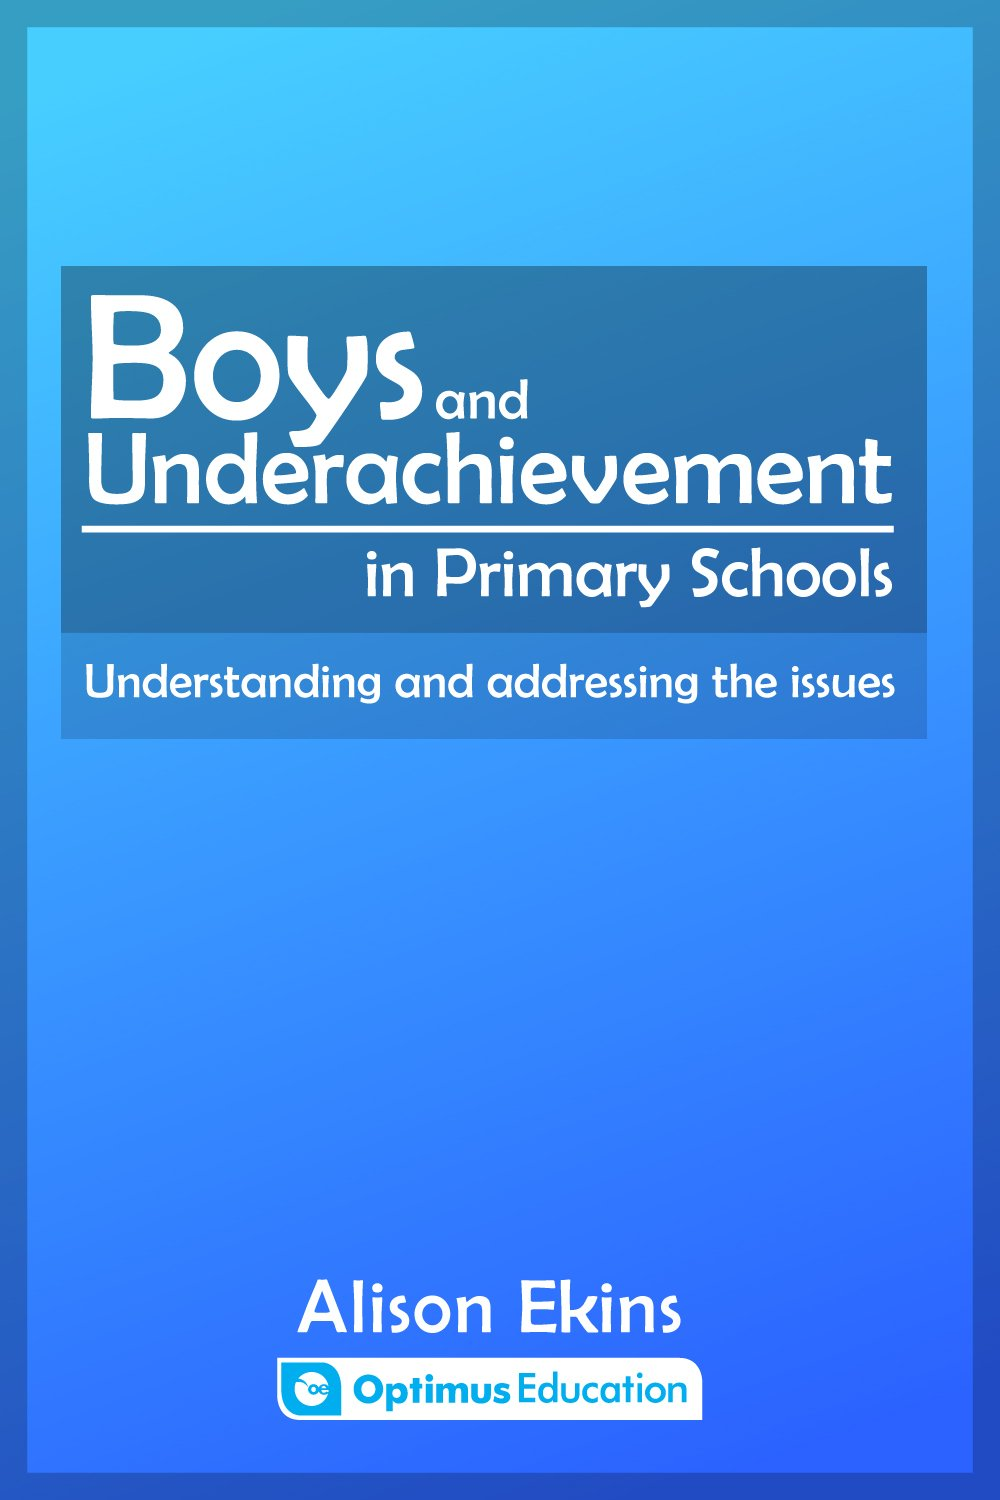 Boys and Underachievement in Primary Schools